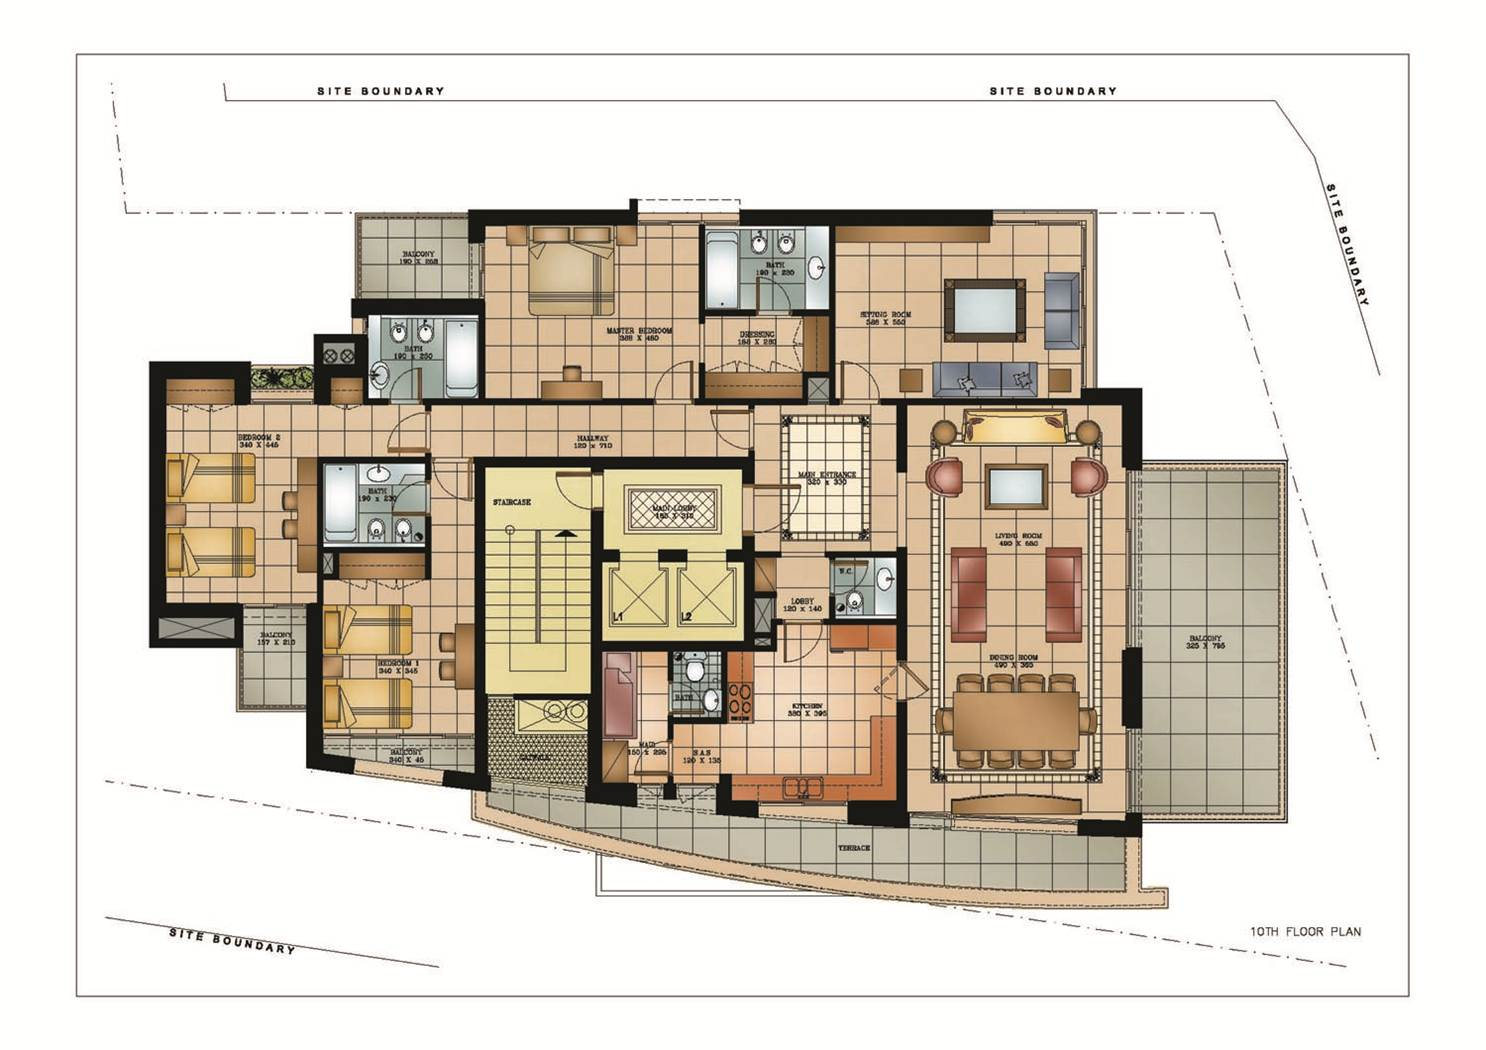 High Rise Residential Floor Plan Google Search Apartment: residential building plans